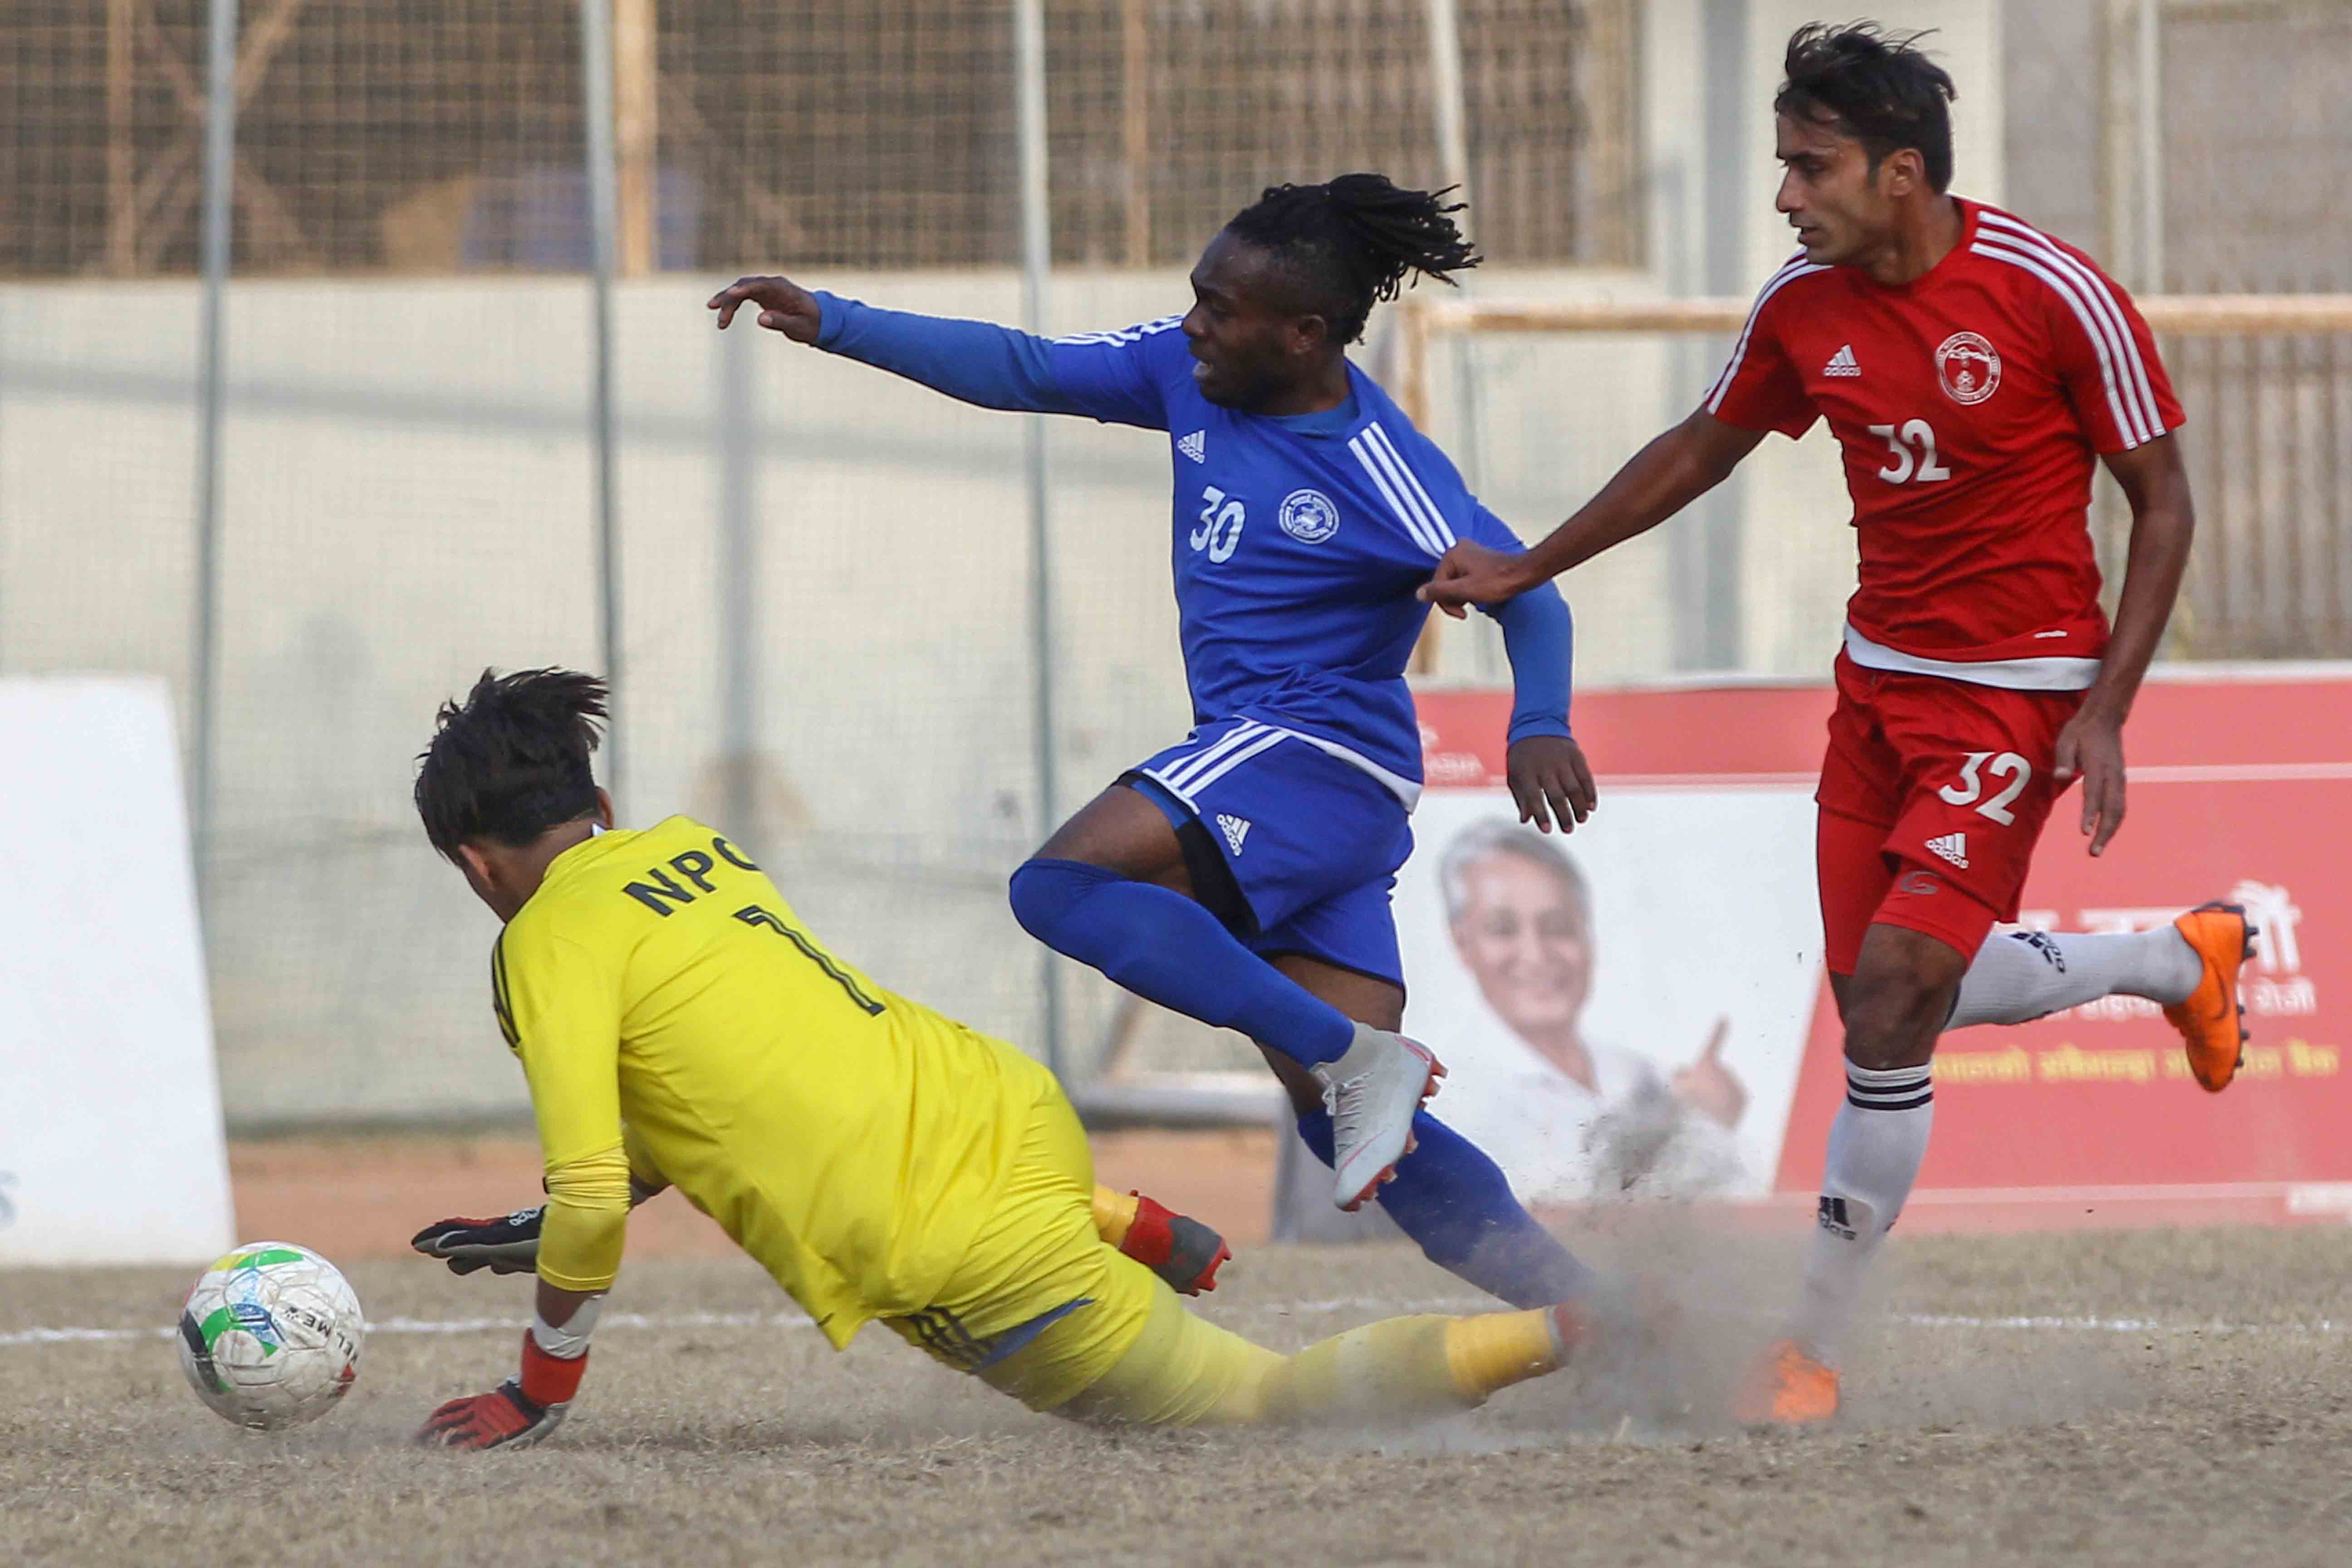 Victor Amobie (centre) of SYC vies with NPC goalkeeper Arpan Karki and Ajit Bhandari during their Pulsar Martyrs Memorial A Division League match in Kathmandu on Saturday. Photo: THT